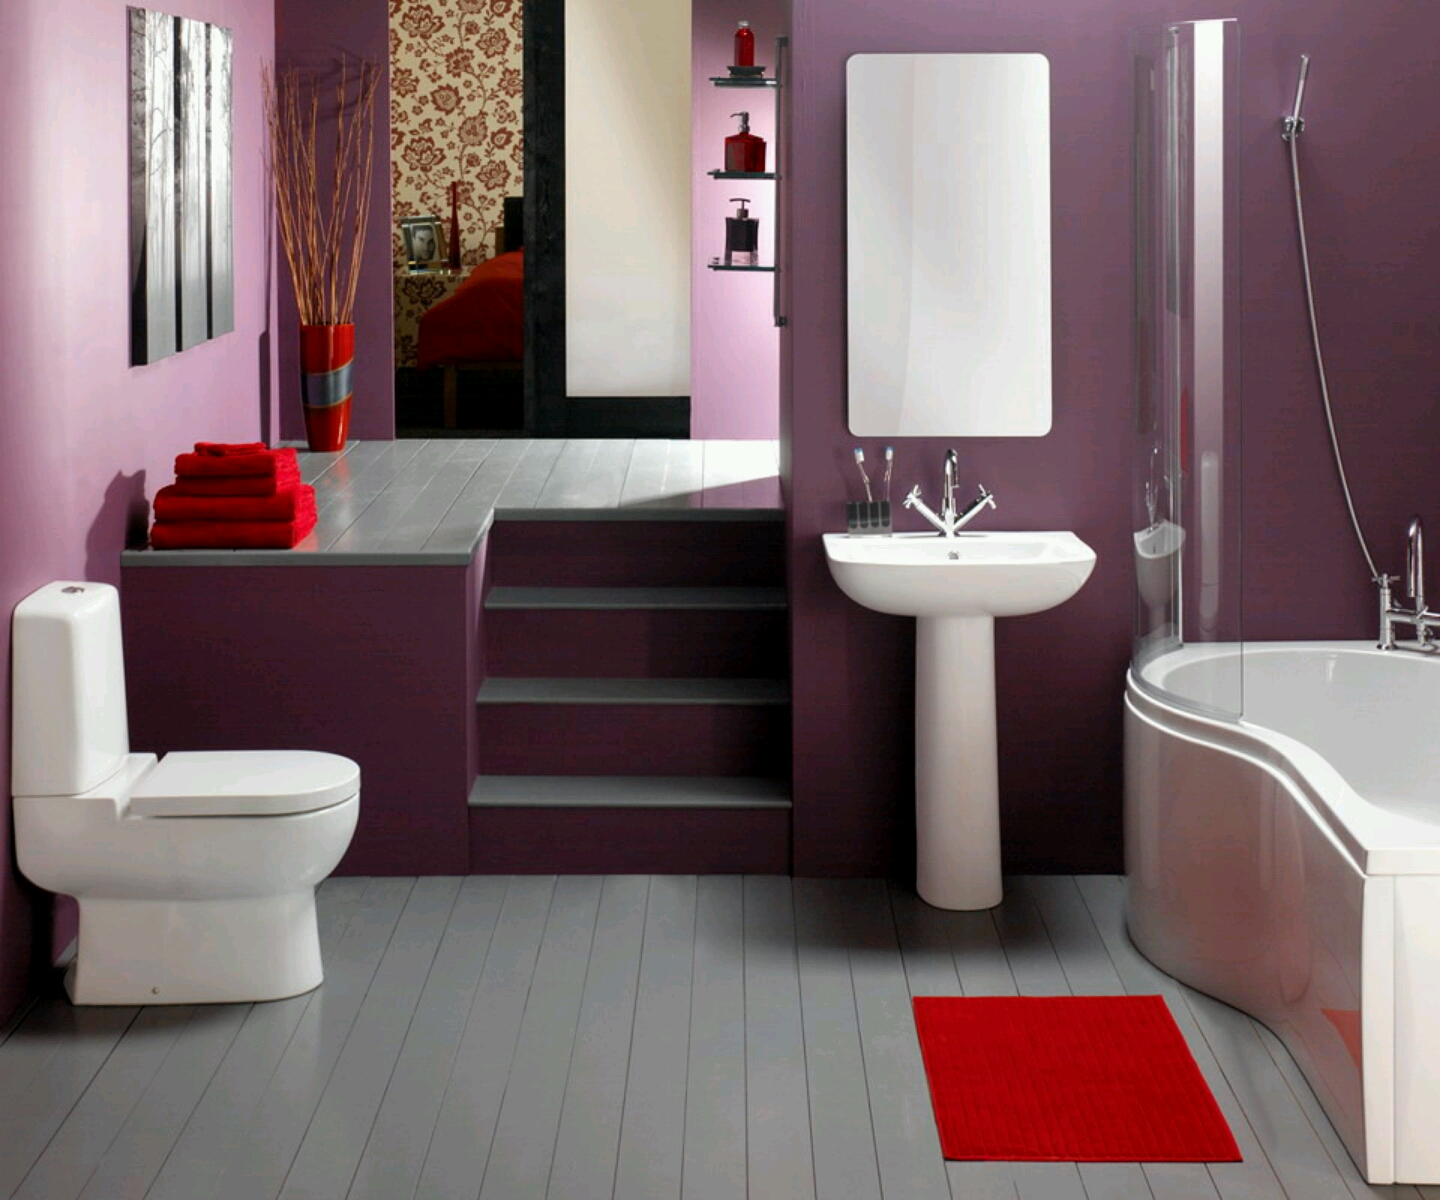 New home designs latest luxury modern bathrooms designs for Bathroom design tips